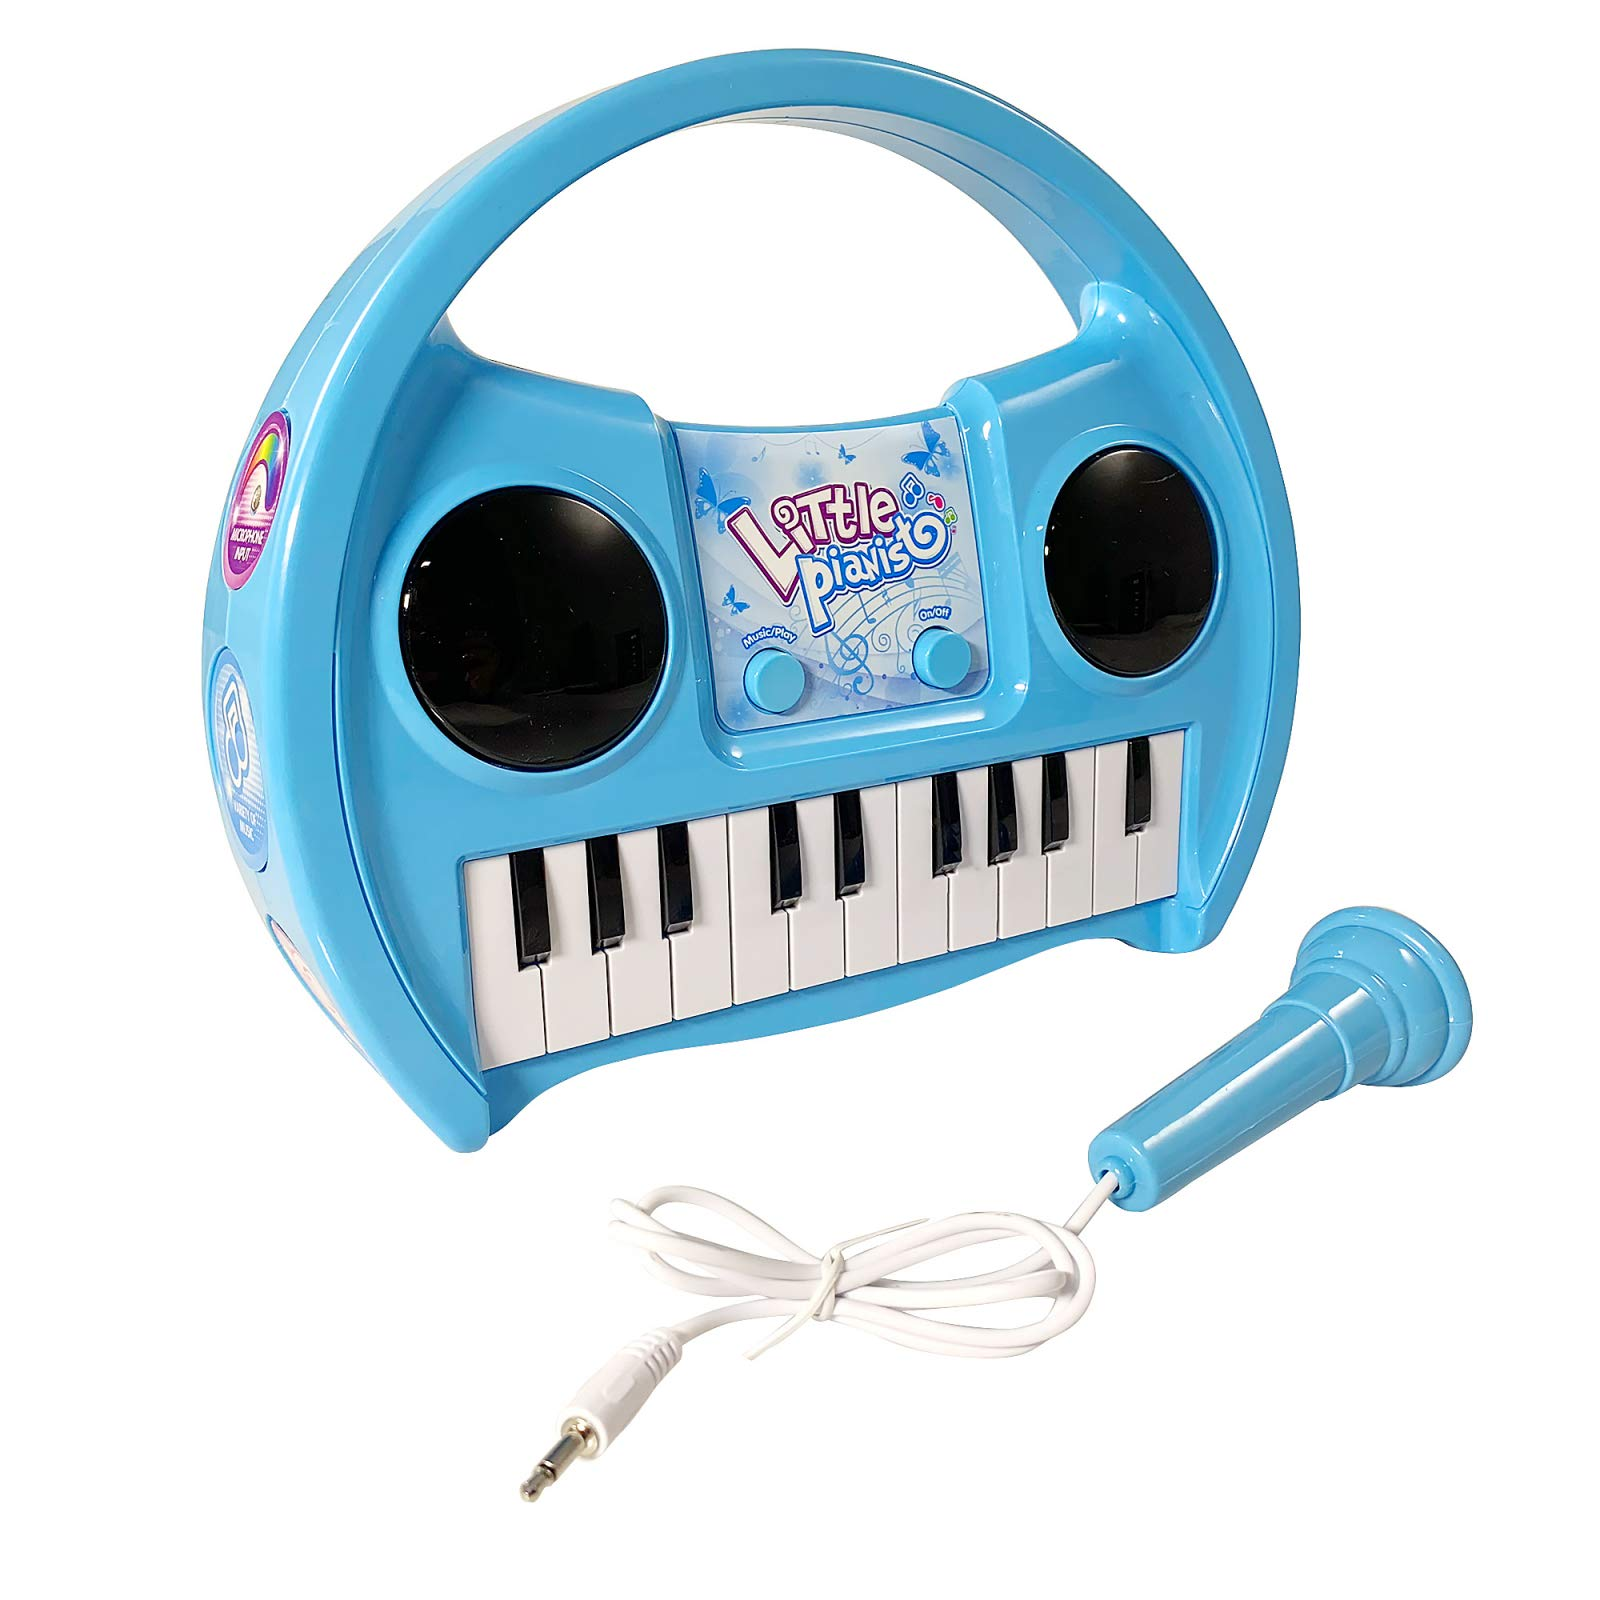 KidPlay Products Little Pianist Singing Musical Karaoke Lights Up Keyboard by KidPlay Products (Image #1)